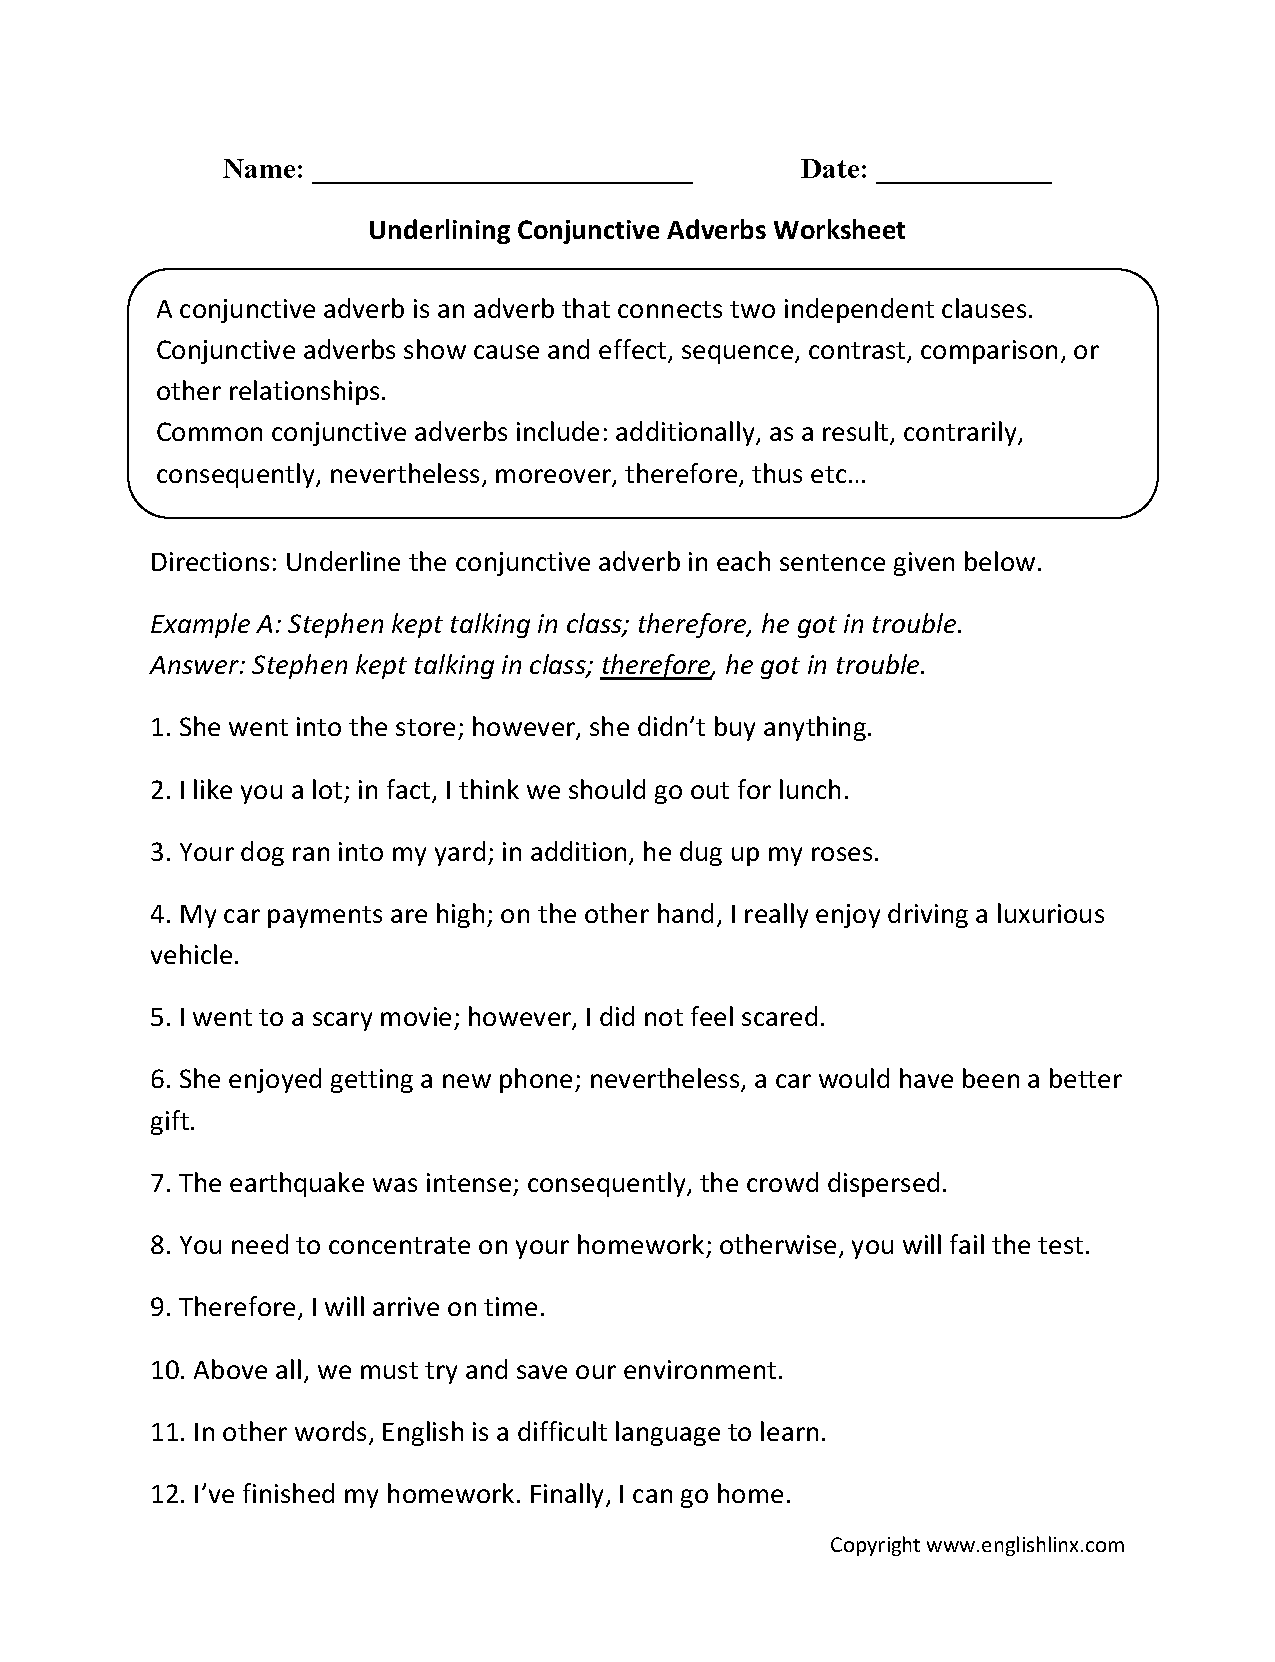 Weirdmailus  Fascinating Englishlinxcom  Conjunctions Worksheets With Engaging Worksheet With Astonishing Passive Voice Esl Worksheet Also The Constitution Worksheet In Addition Ordering Sentences Worksheets And Worksheets On Quadrilaterals And Their Properties As Well As Nc Child Support Calculator Worksheet A Additionally Printing Numbers   Worksheets From Englishlinxcom With Weirdmailus  Engaging Englishlinxcom  Conjunctions Worksheets With Astonishing Worksheet And Fascinating Passive Voice Esl Worksheet Also The Constitution Worksheet In Addition Ordering Sentences Worksheets From Englishlinxcom